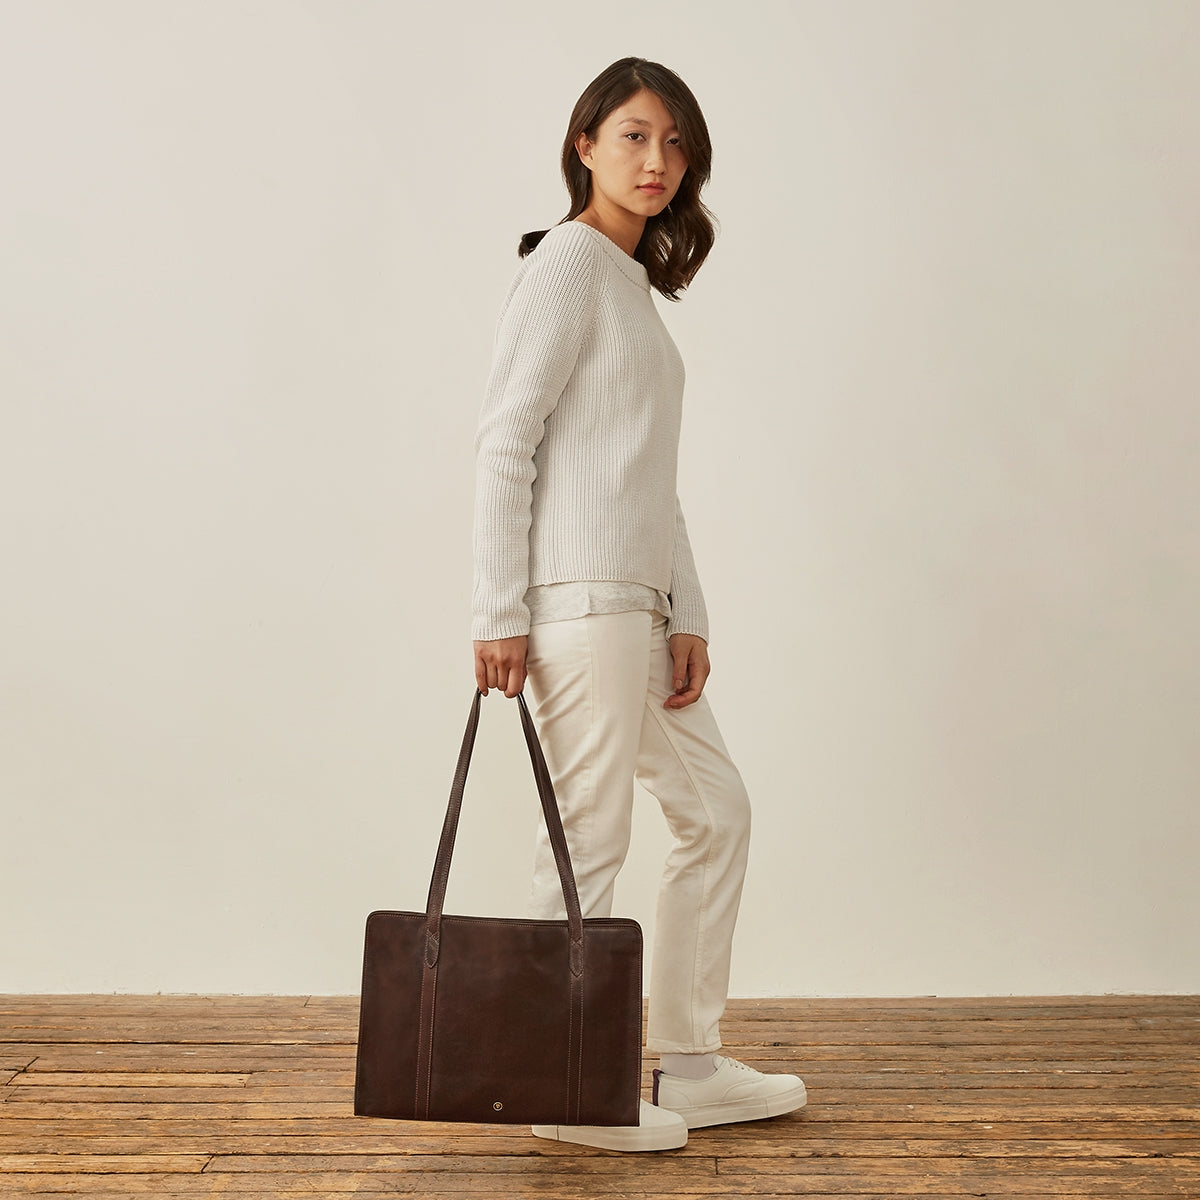 Image 8 of the 'Rivara' Large Dark Chocolate Veg-Tanned Leather Shoulder Bag